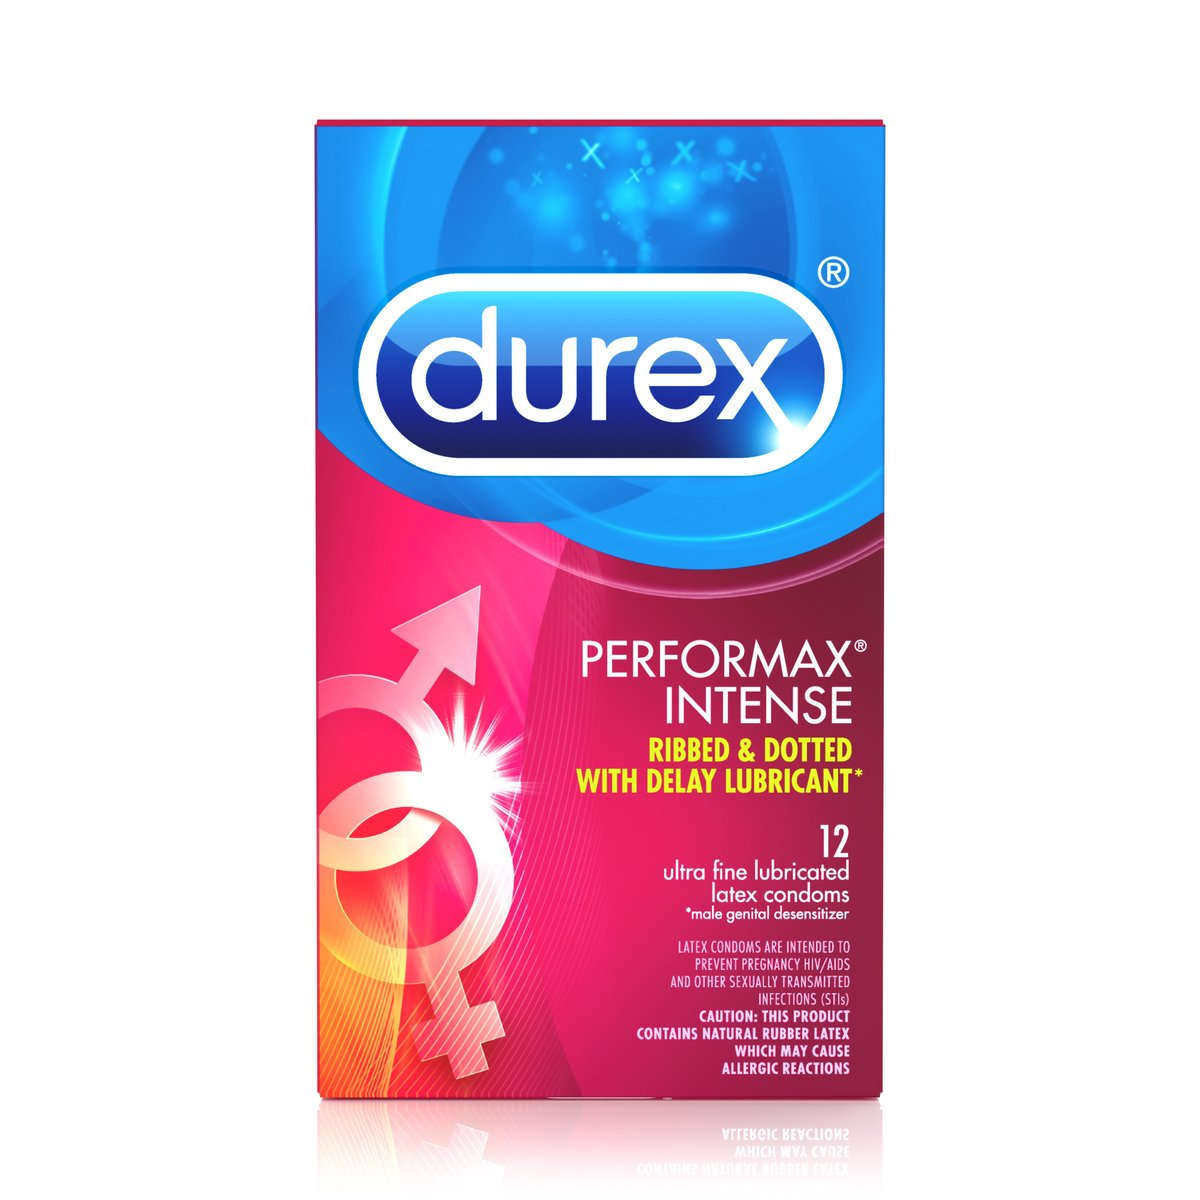 6. Durex Performax Intense